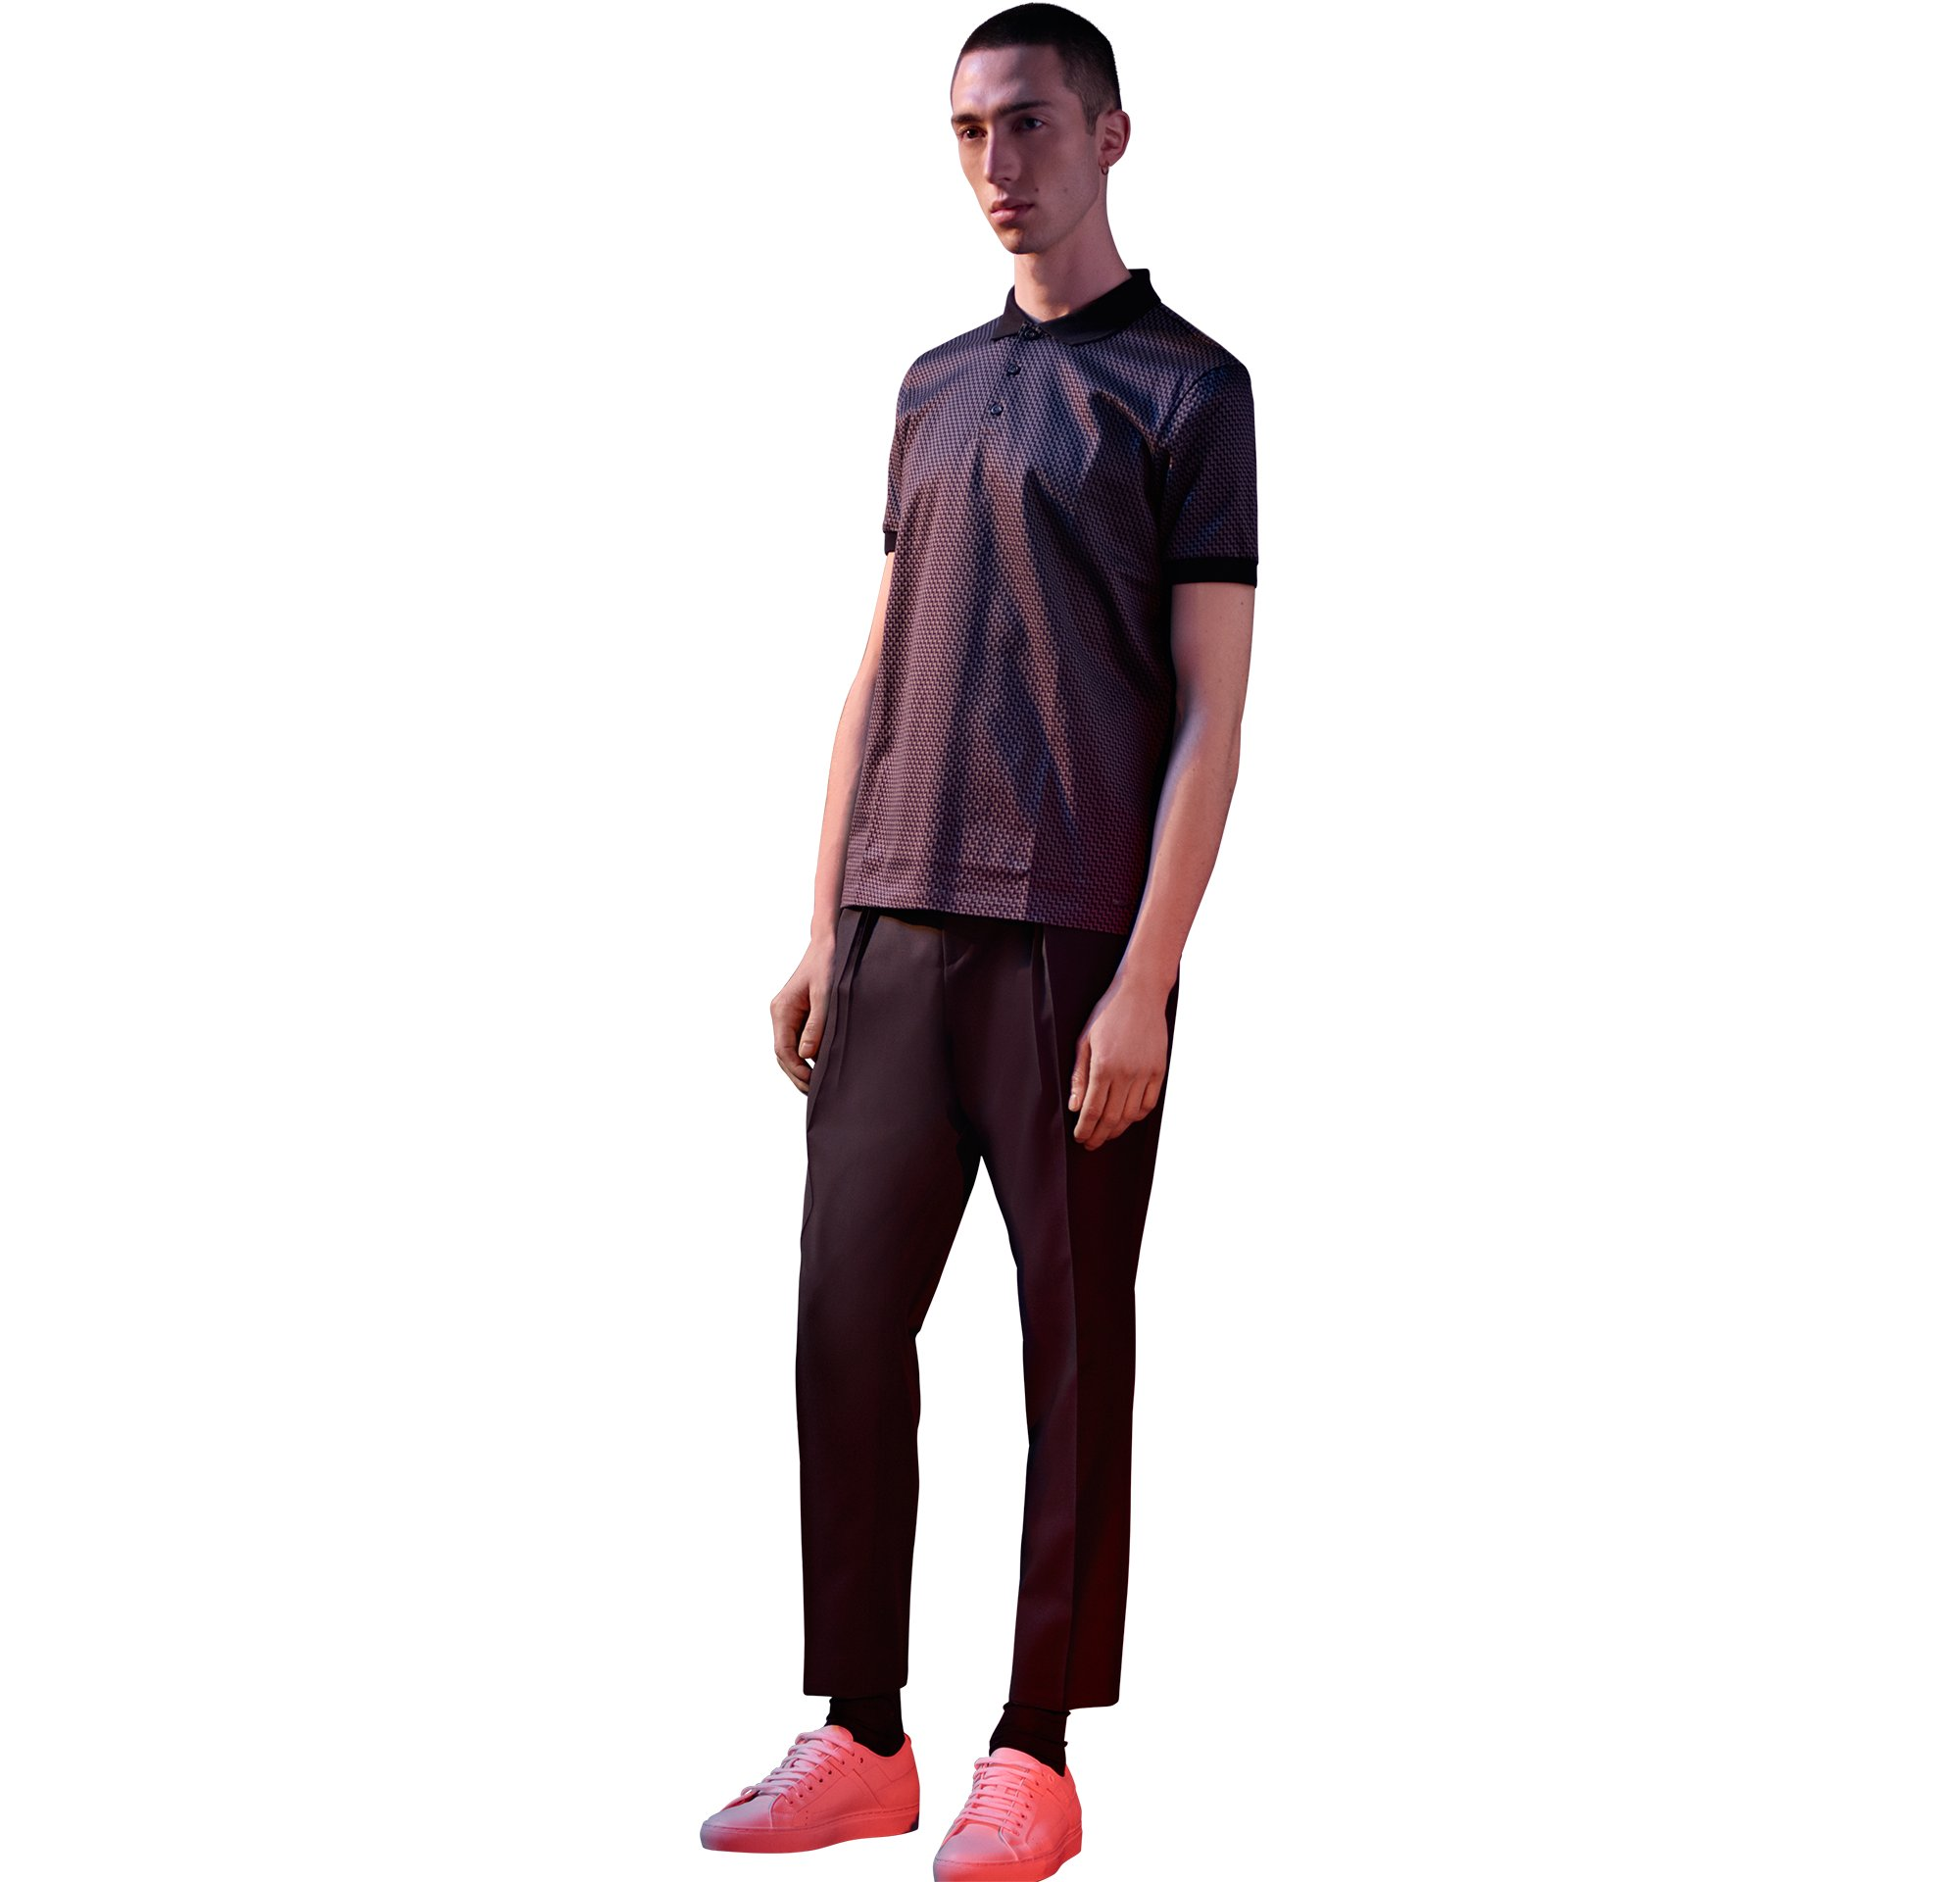 Shirt, trousers, sneakers by HUGO Menswear